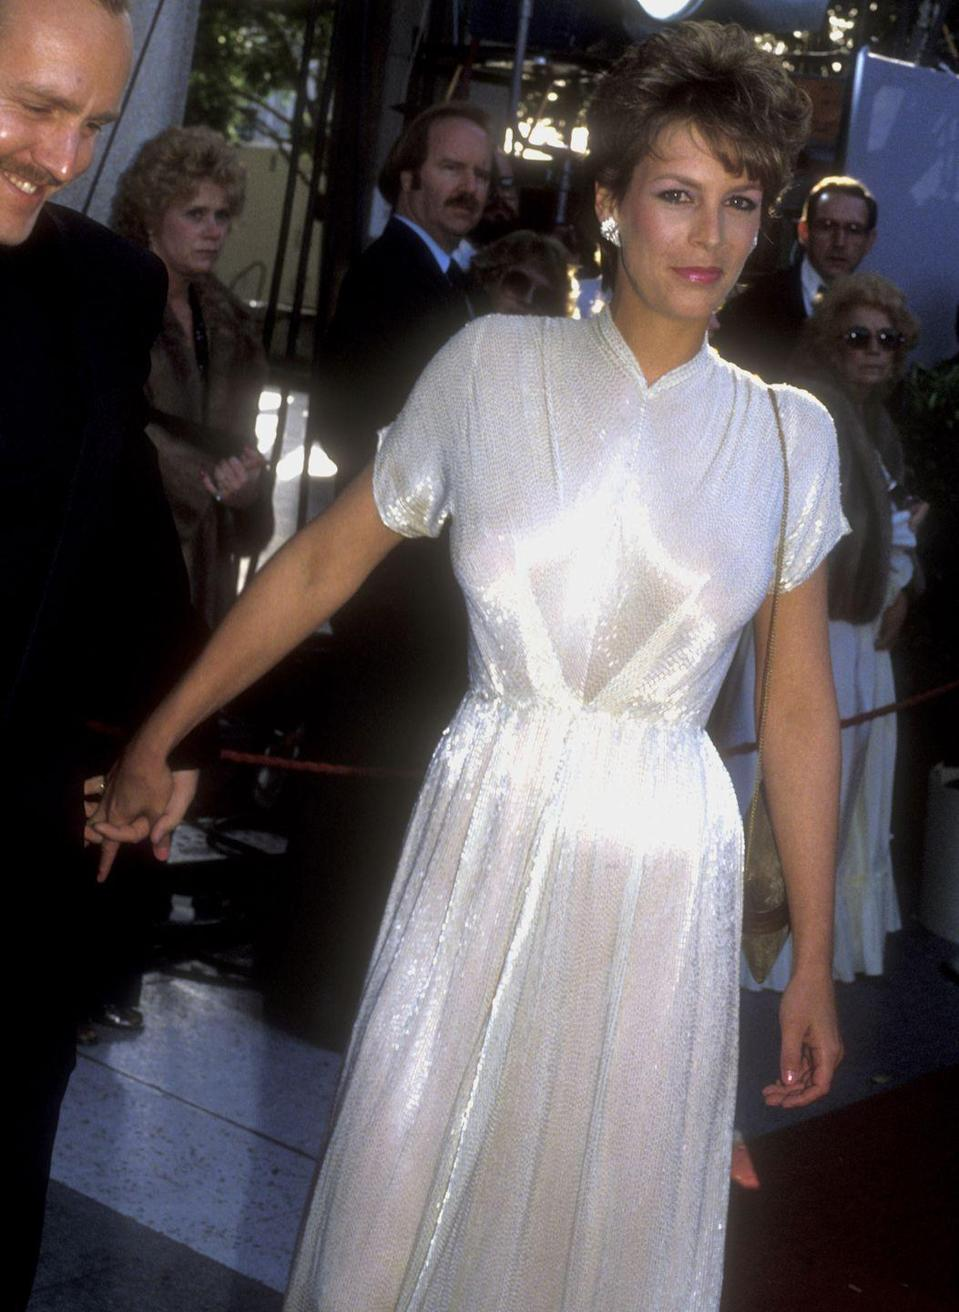 <p>The actress was a vision in this elegant dress and classic '80s hairstyle. The earrings added an extra shine that really completed the ensemble. Less is more, folks! </p>